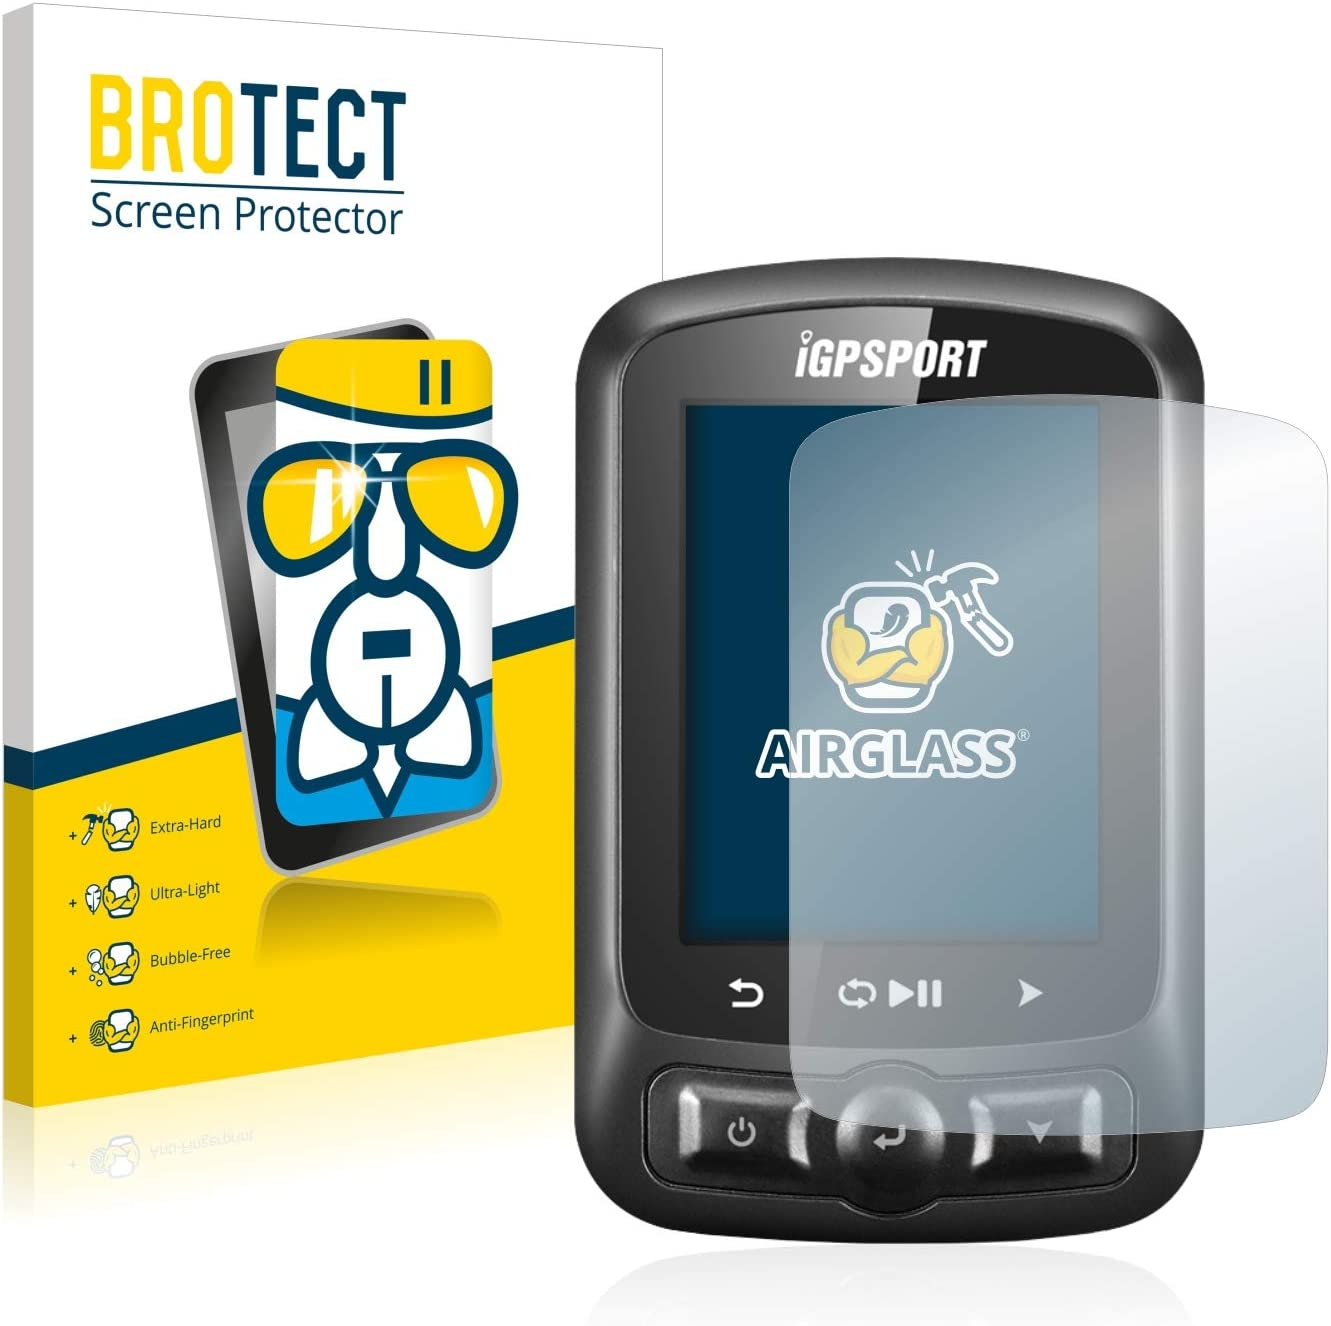 AirGlass Glass Screen Protector for igpsport iGS620 Screen Guard Ultra-Light Extra-Hard BROTECT